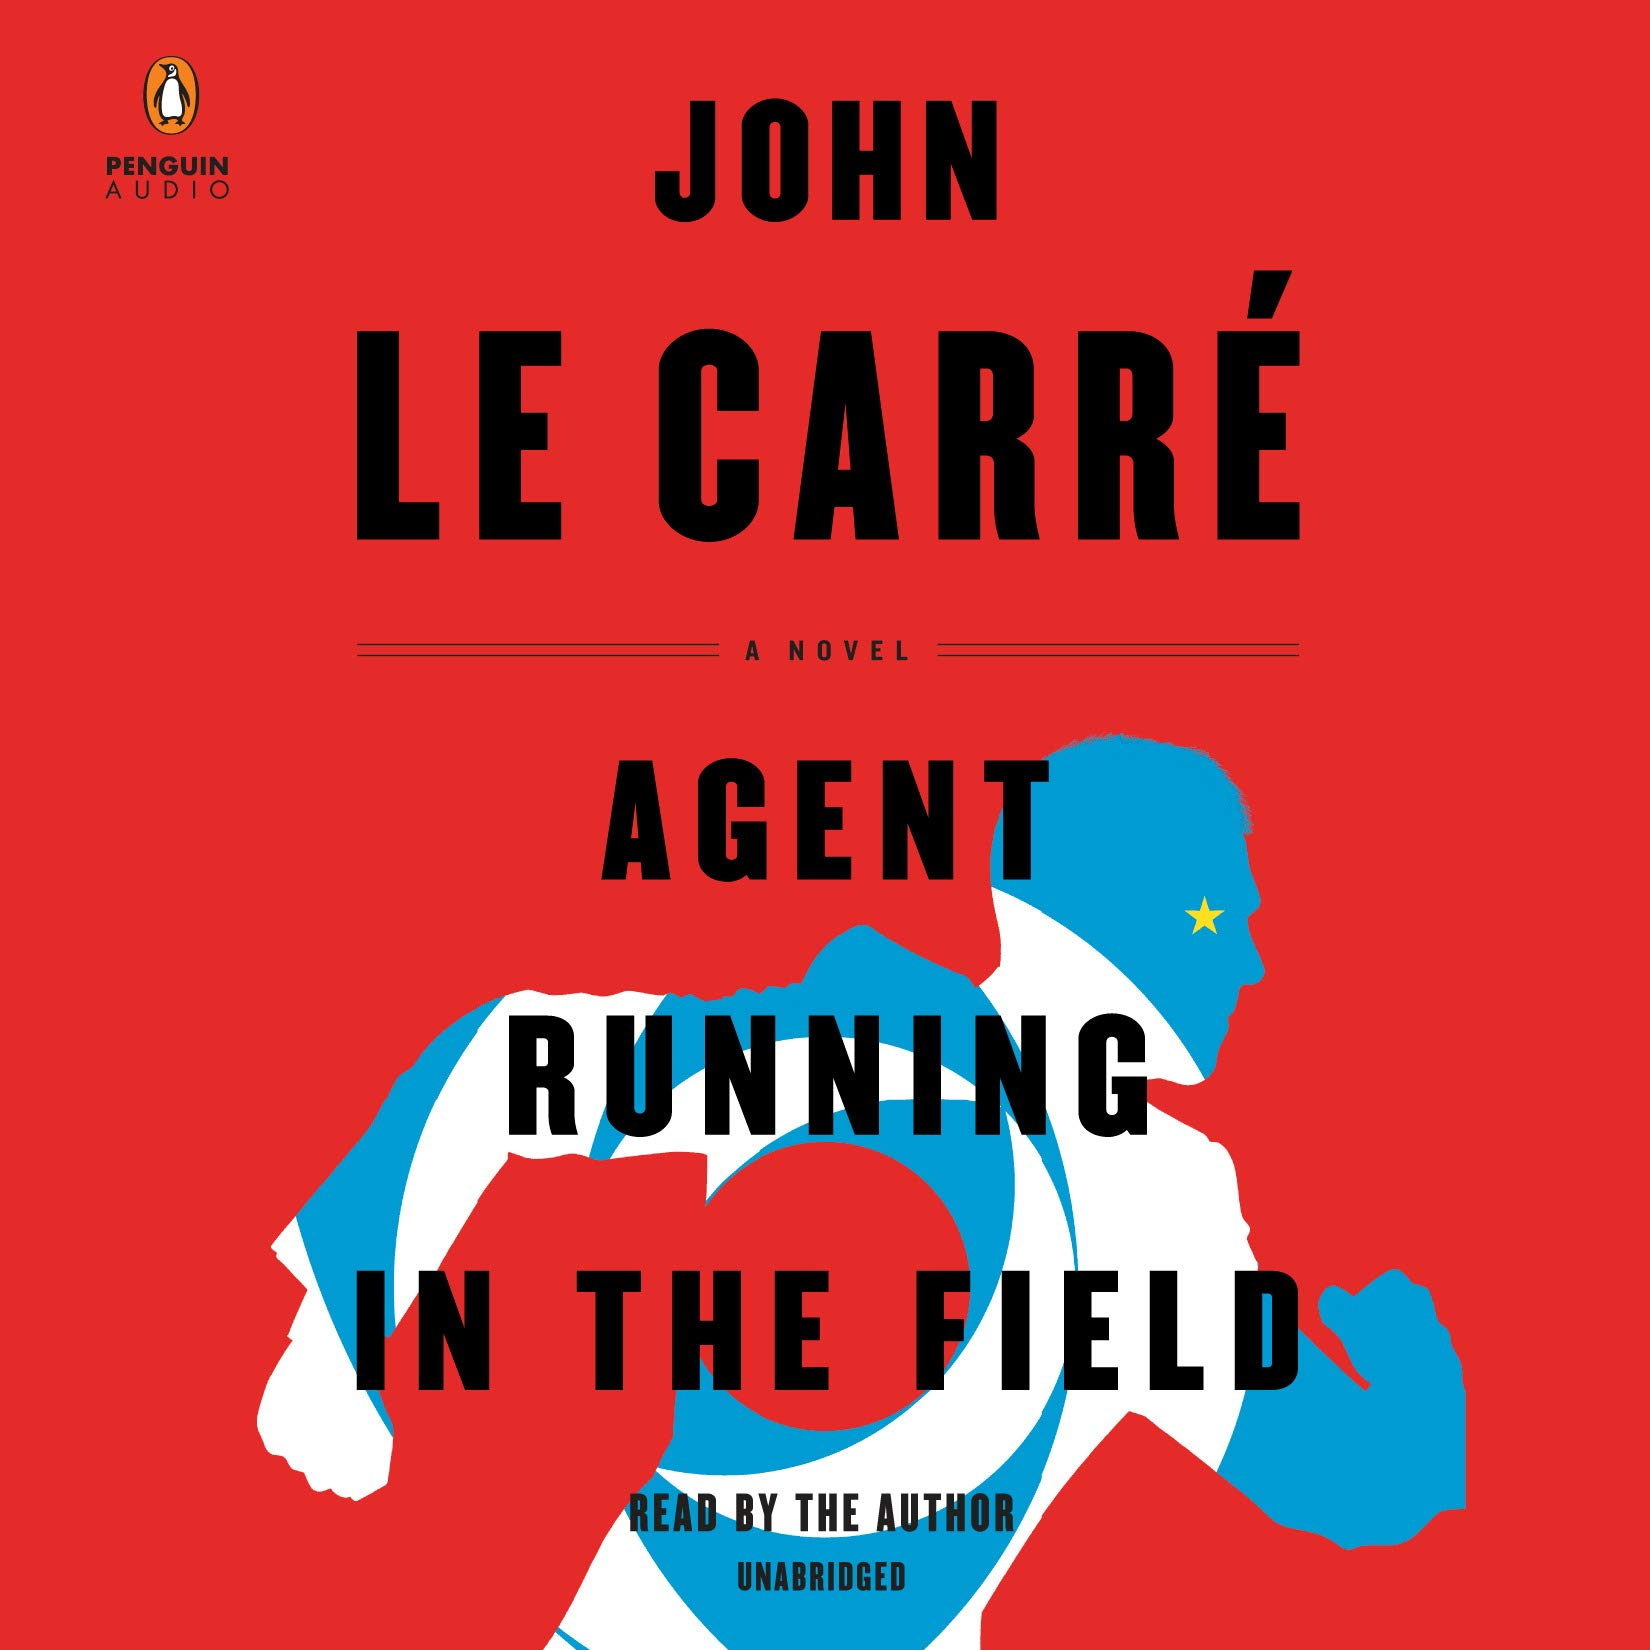 Agent Running in the Field: A Novel by Penguin Audio